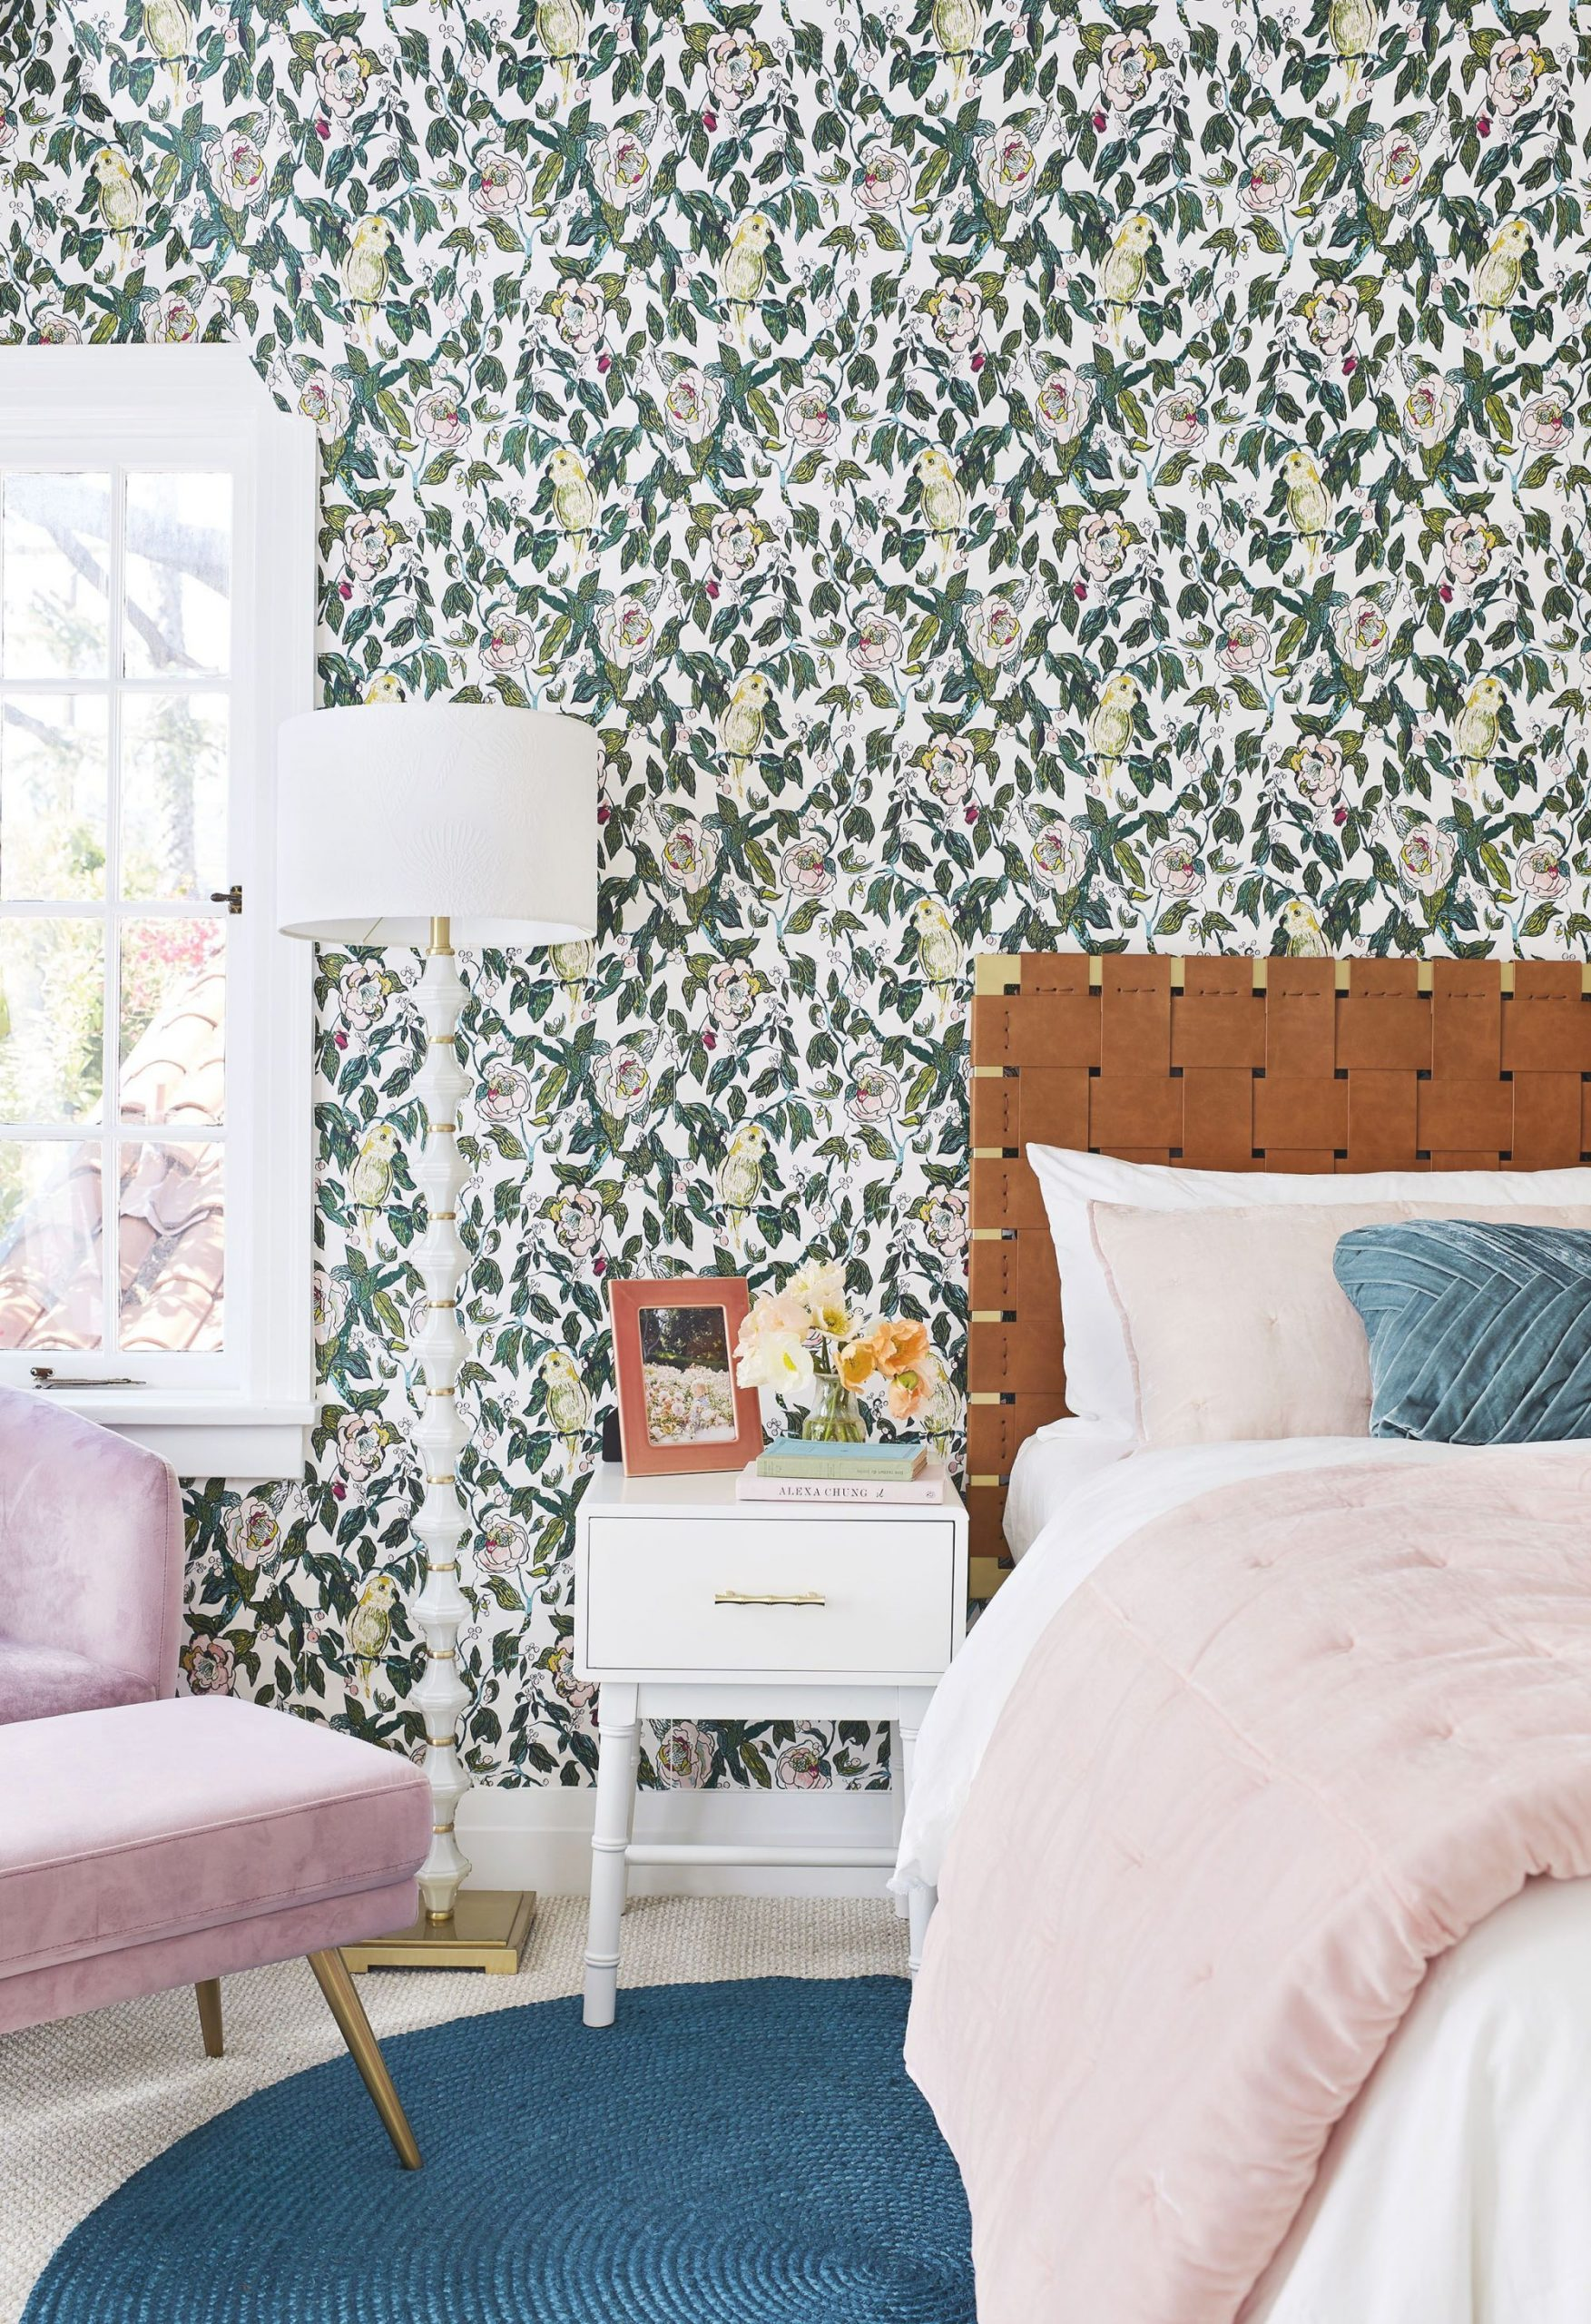 A Romantic Glam Bedroom Makeover With Opalhousetarget regarding Unique Romantic Bedroom Decorating Ideas Pinterest